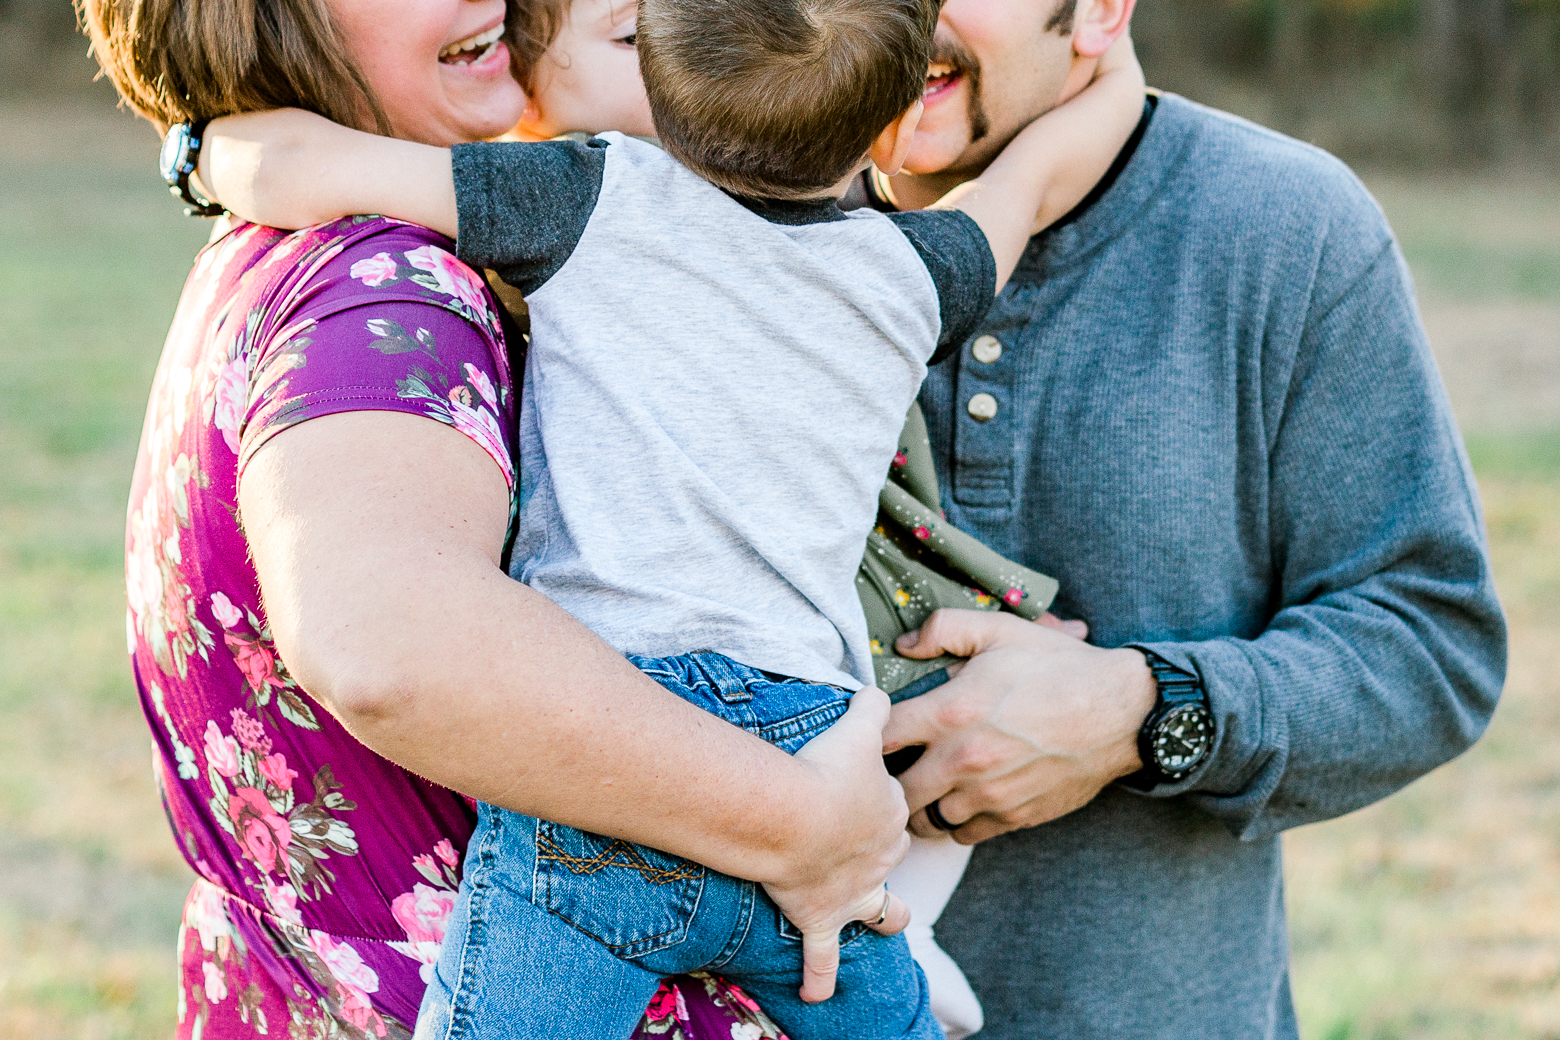 kentucky Fall Family of four family session wedding and lifestyle photographer Lytle Photo Co (25 of 78).jpg